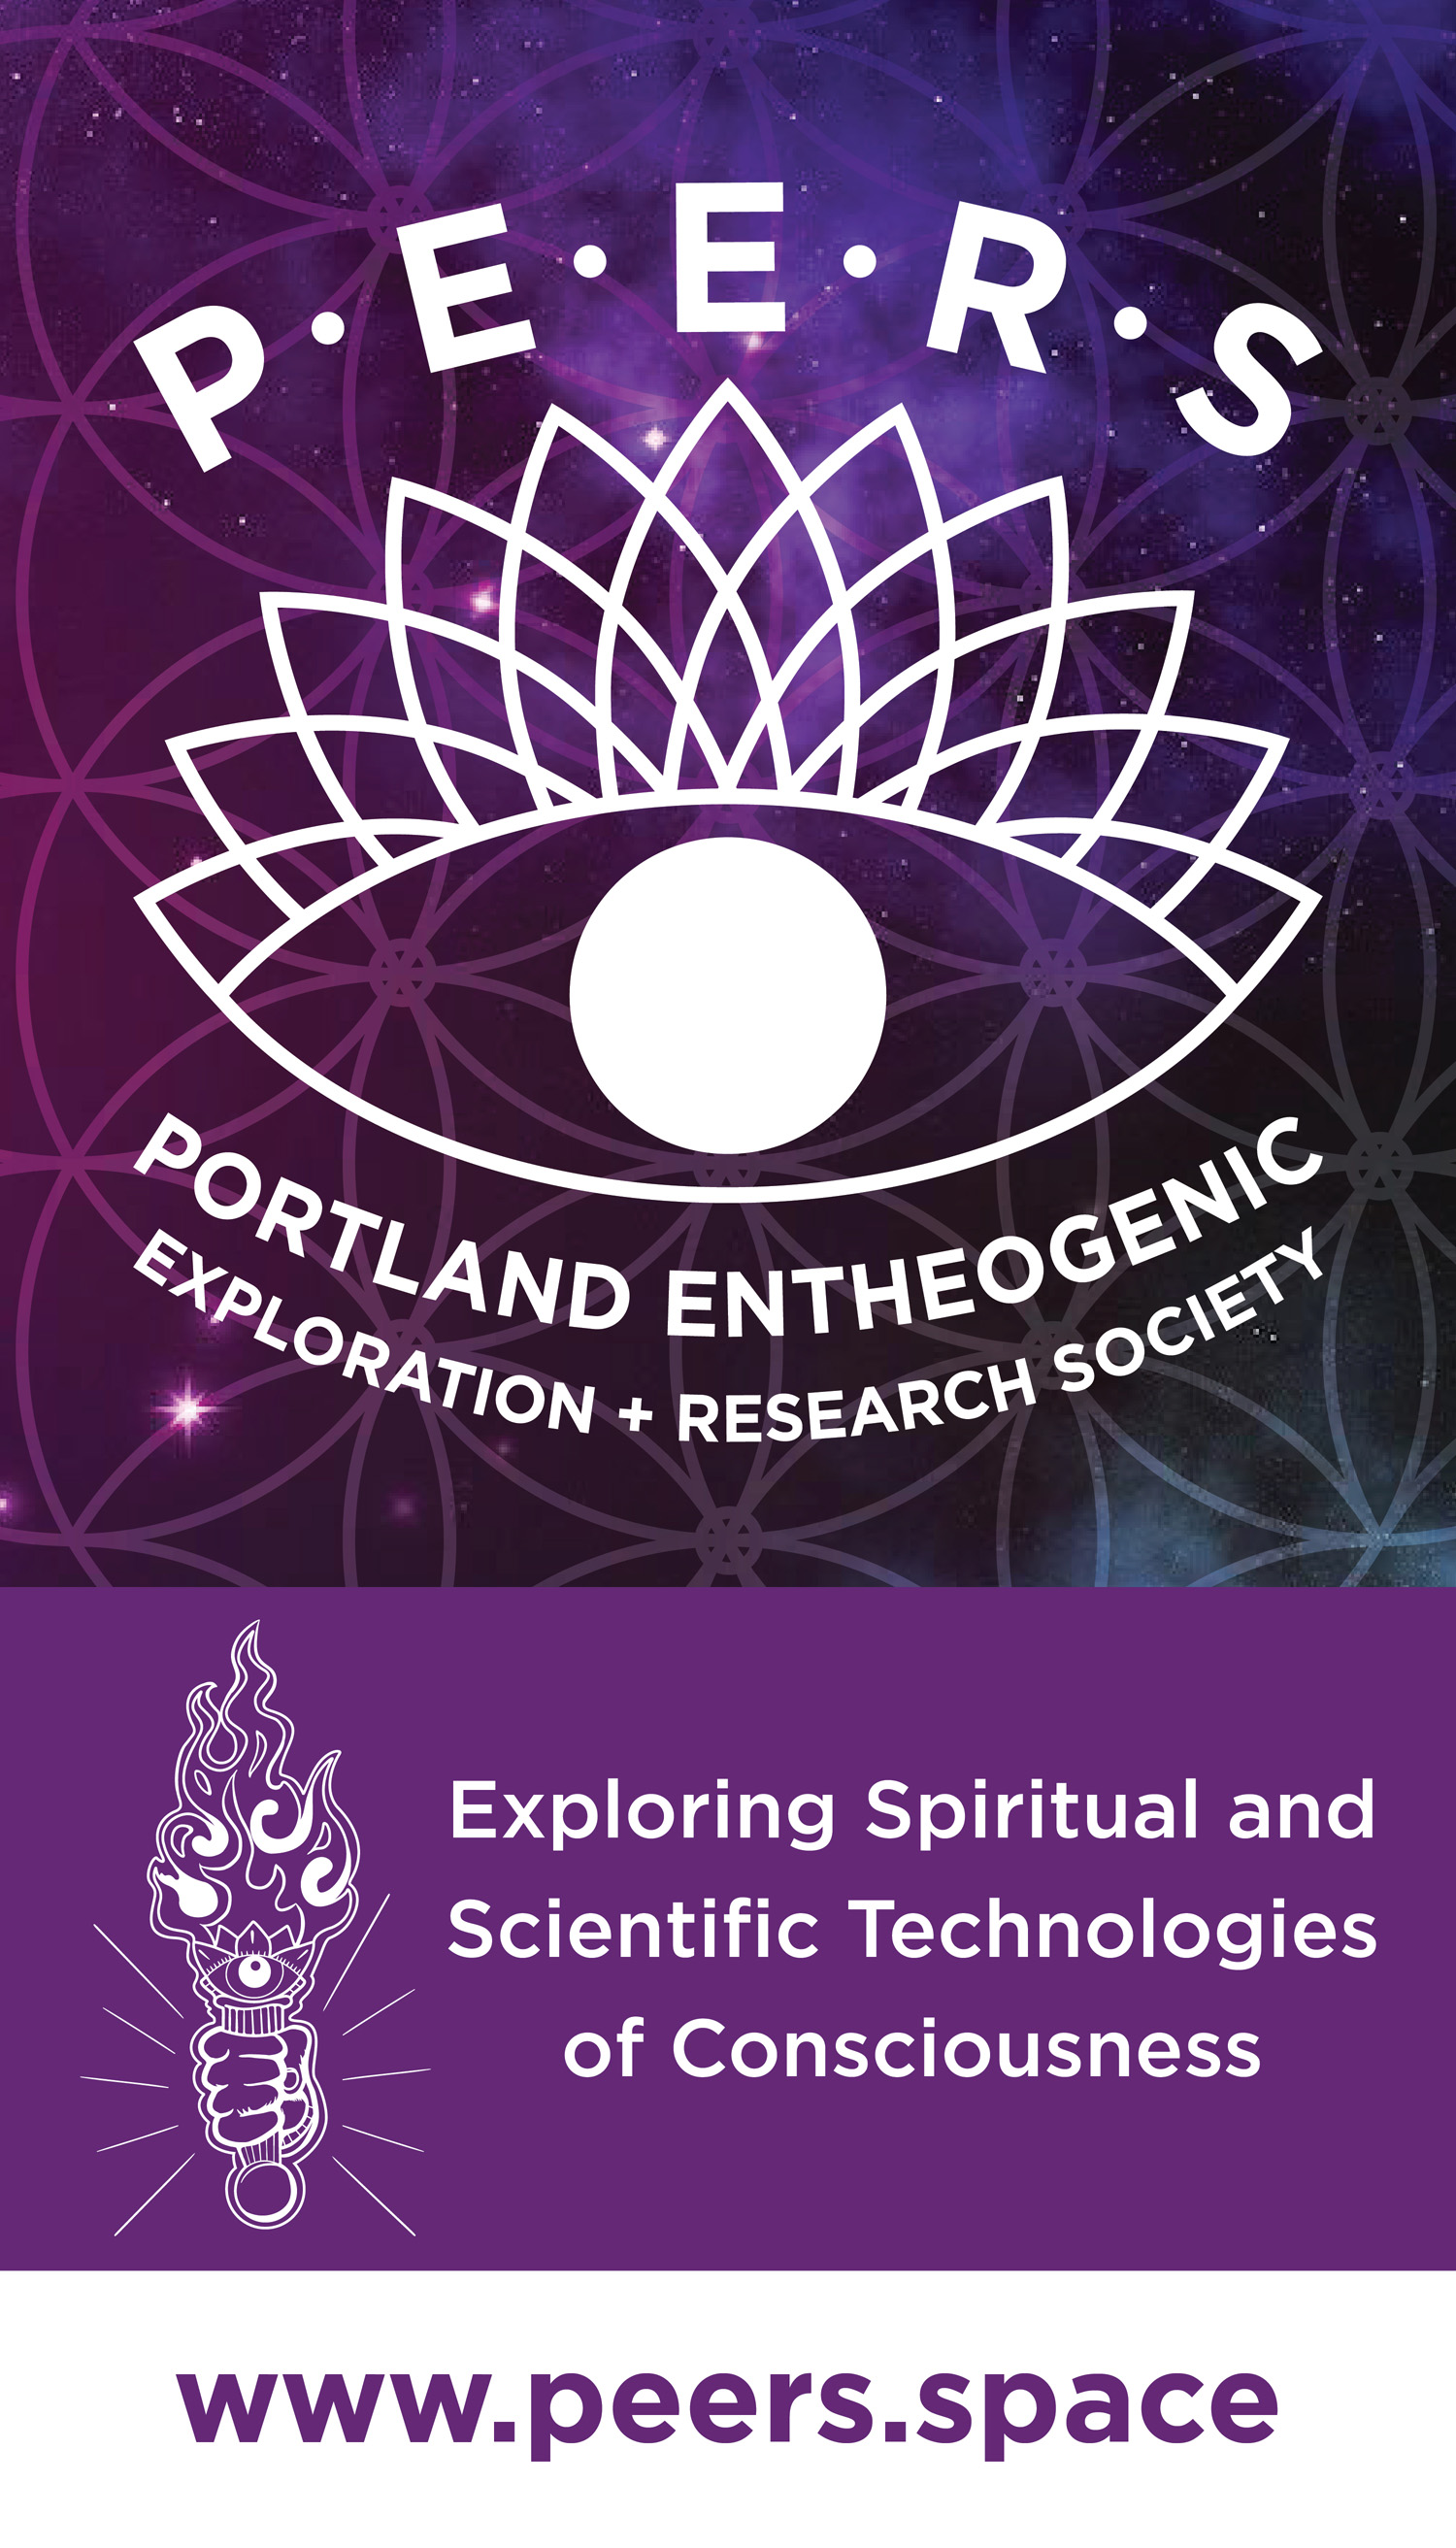 PEERS: Portland Entheogenic Exploration and Research Society